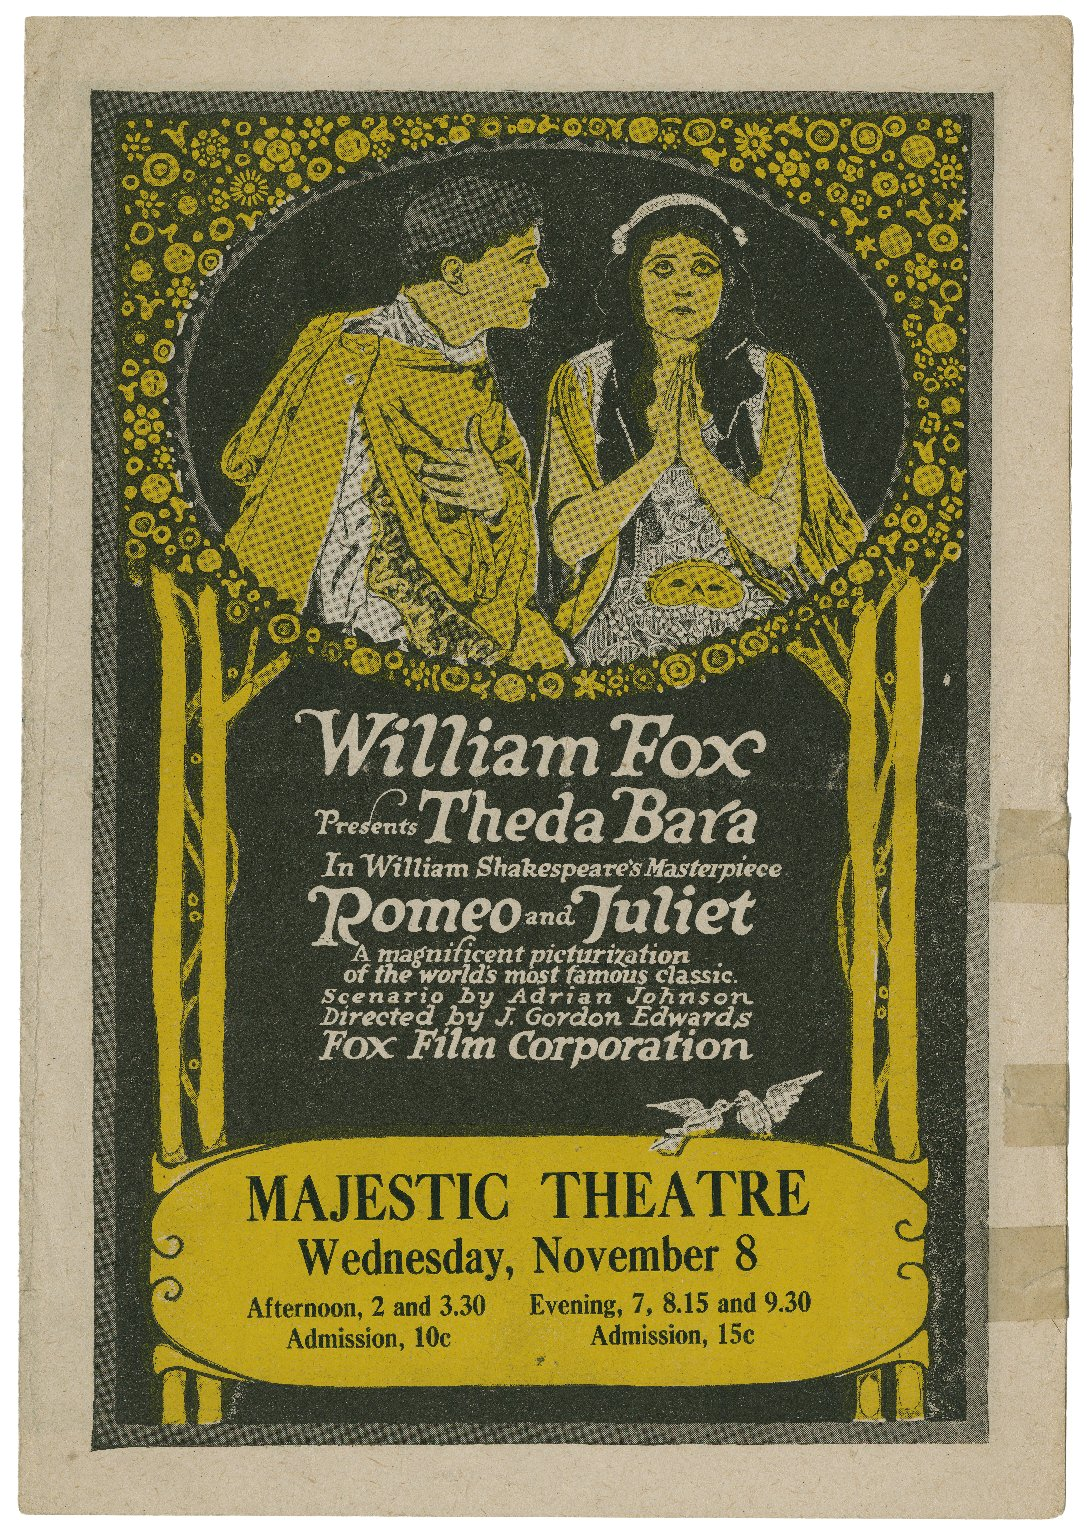 William Fox presents Theda Bara in William Shakespeare's masterpiece Romeo and Juliet.